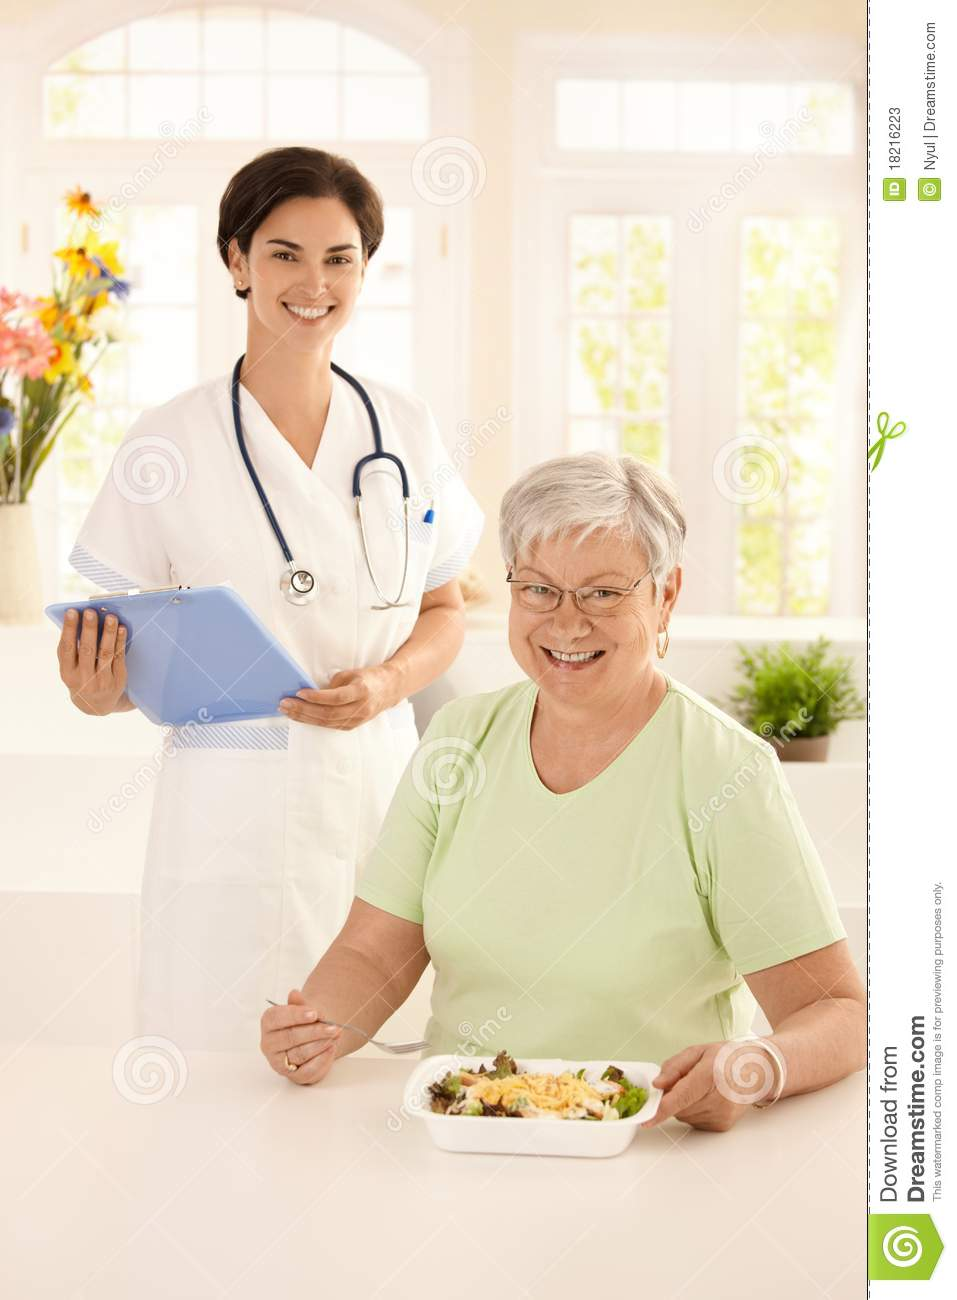 Healthy Elderly Woman Eating Salad Stock Image - Image ...